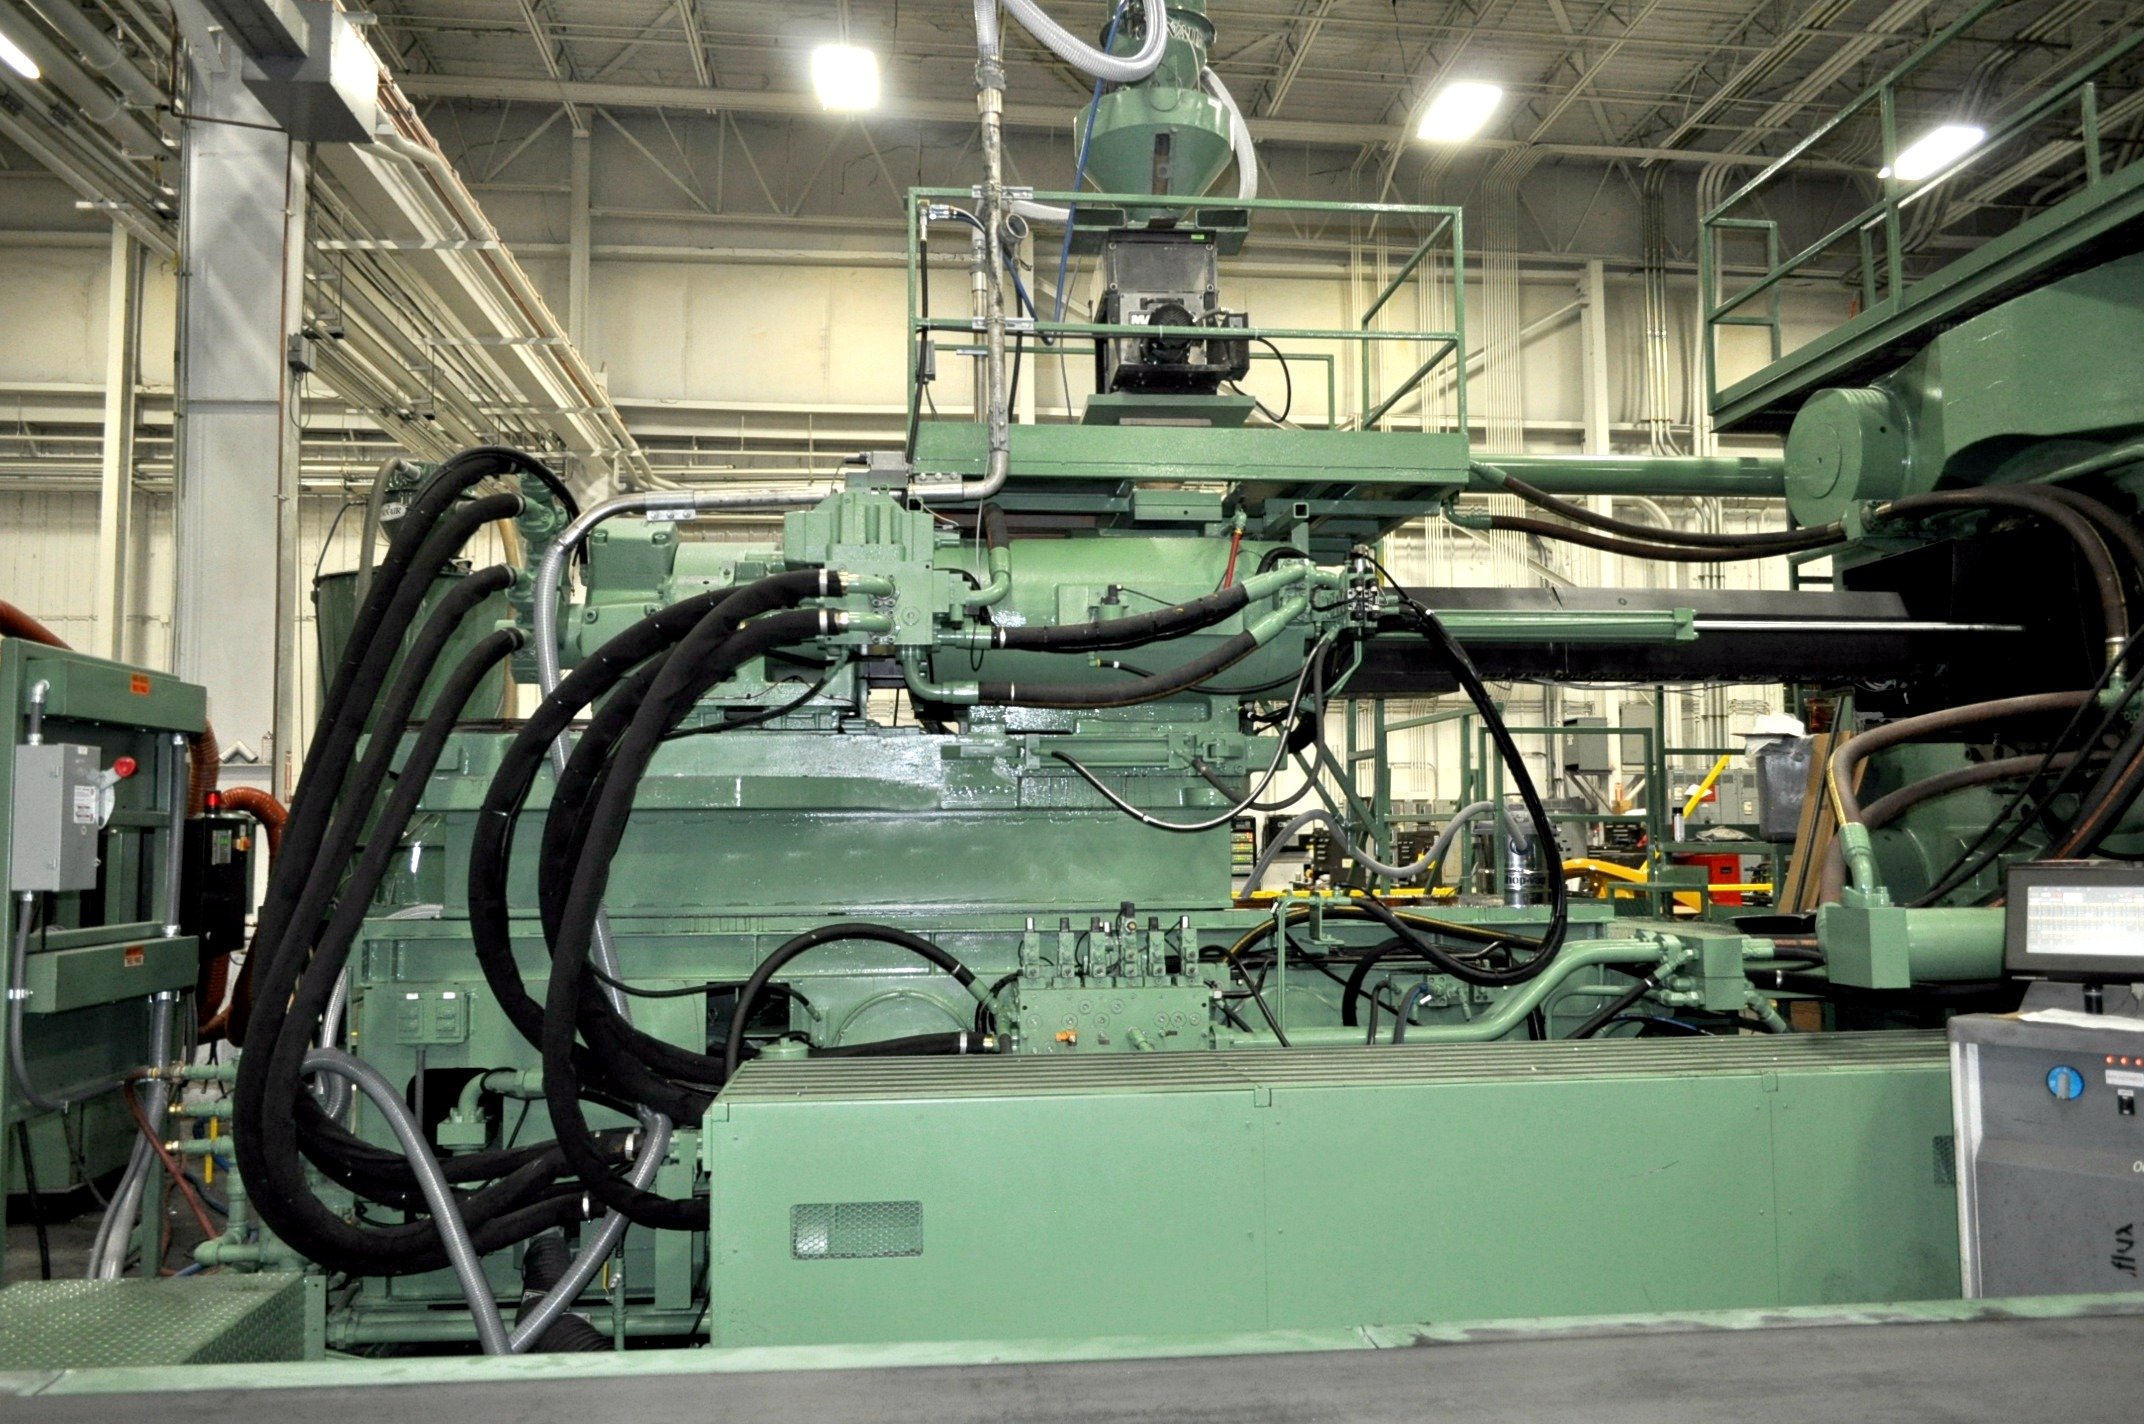 Bemis Manufacturing Acquires New 3,000-Ton Plastic